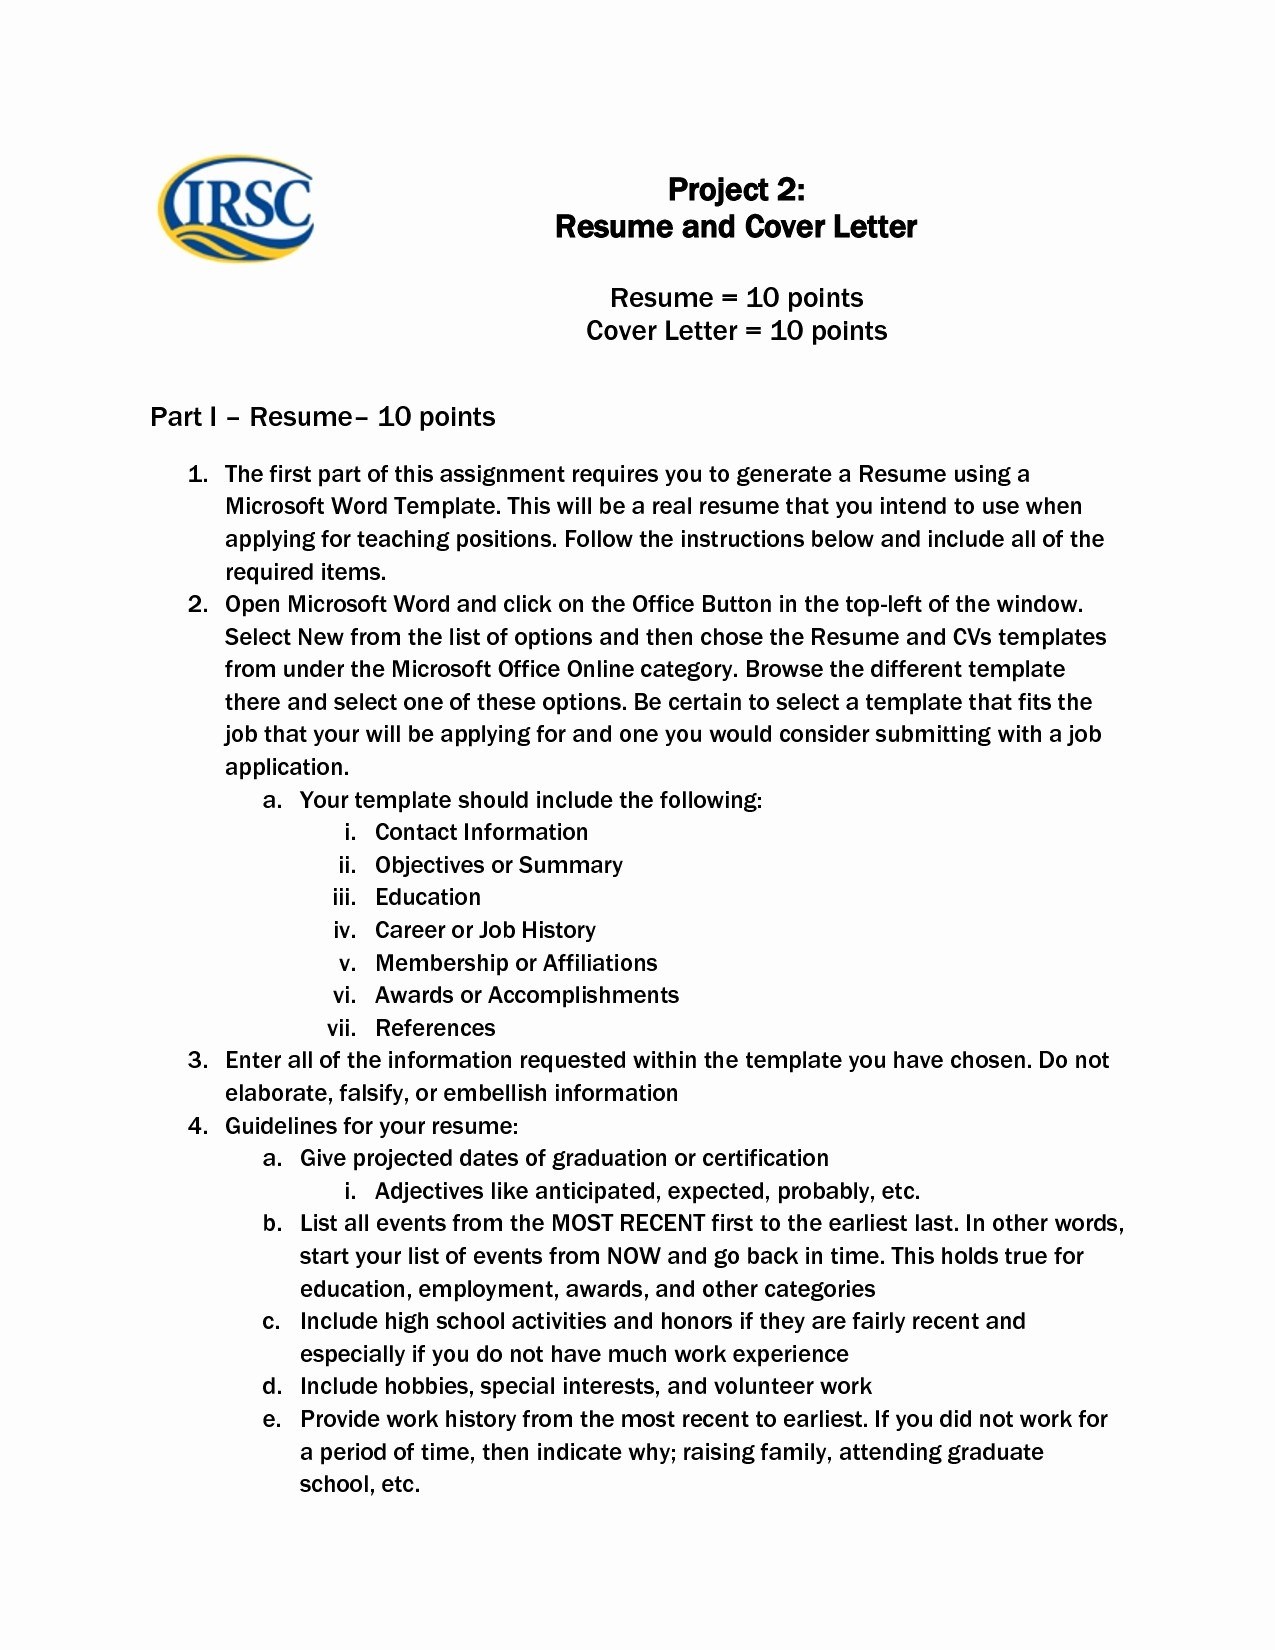 Free Cover Letters for Resumes Unique Resume Cover Letter Template 2017